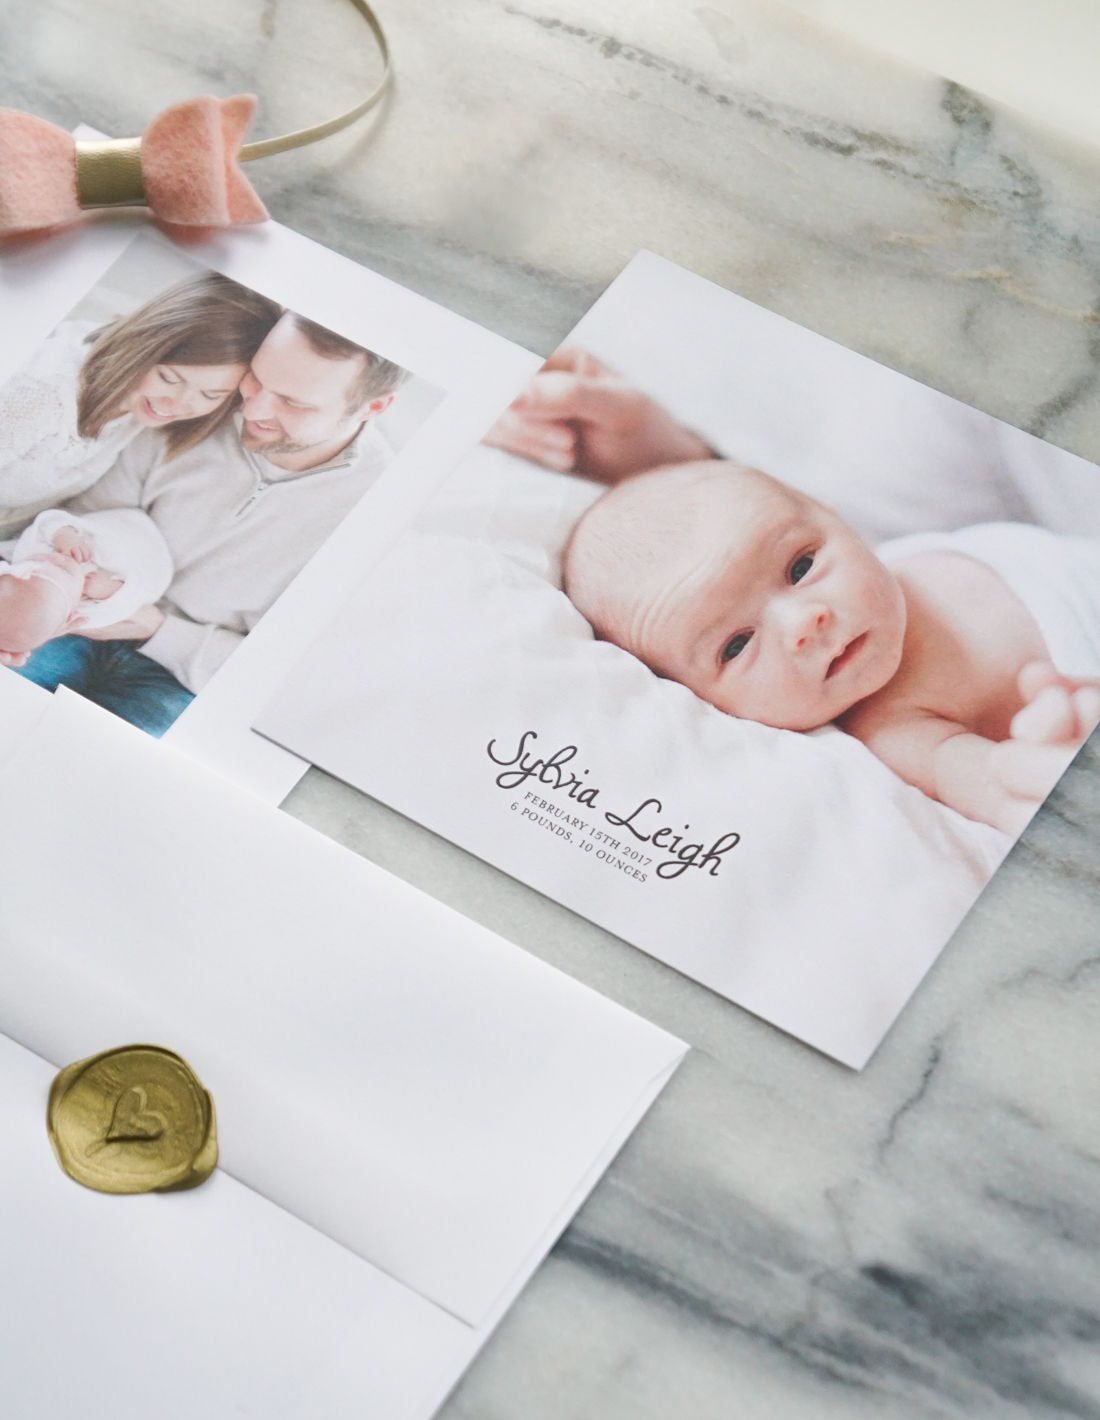 See our custom designed baby girl birth announcements we created from scratch through Mixbook. Click through for all the deets!